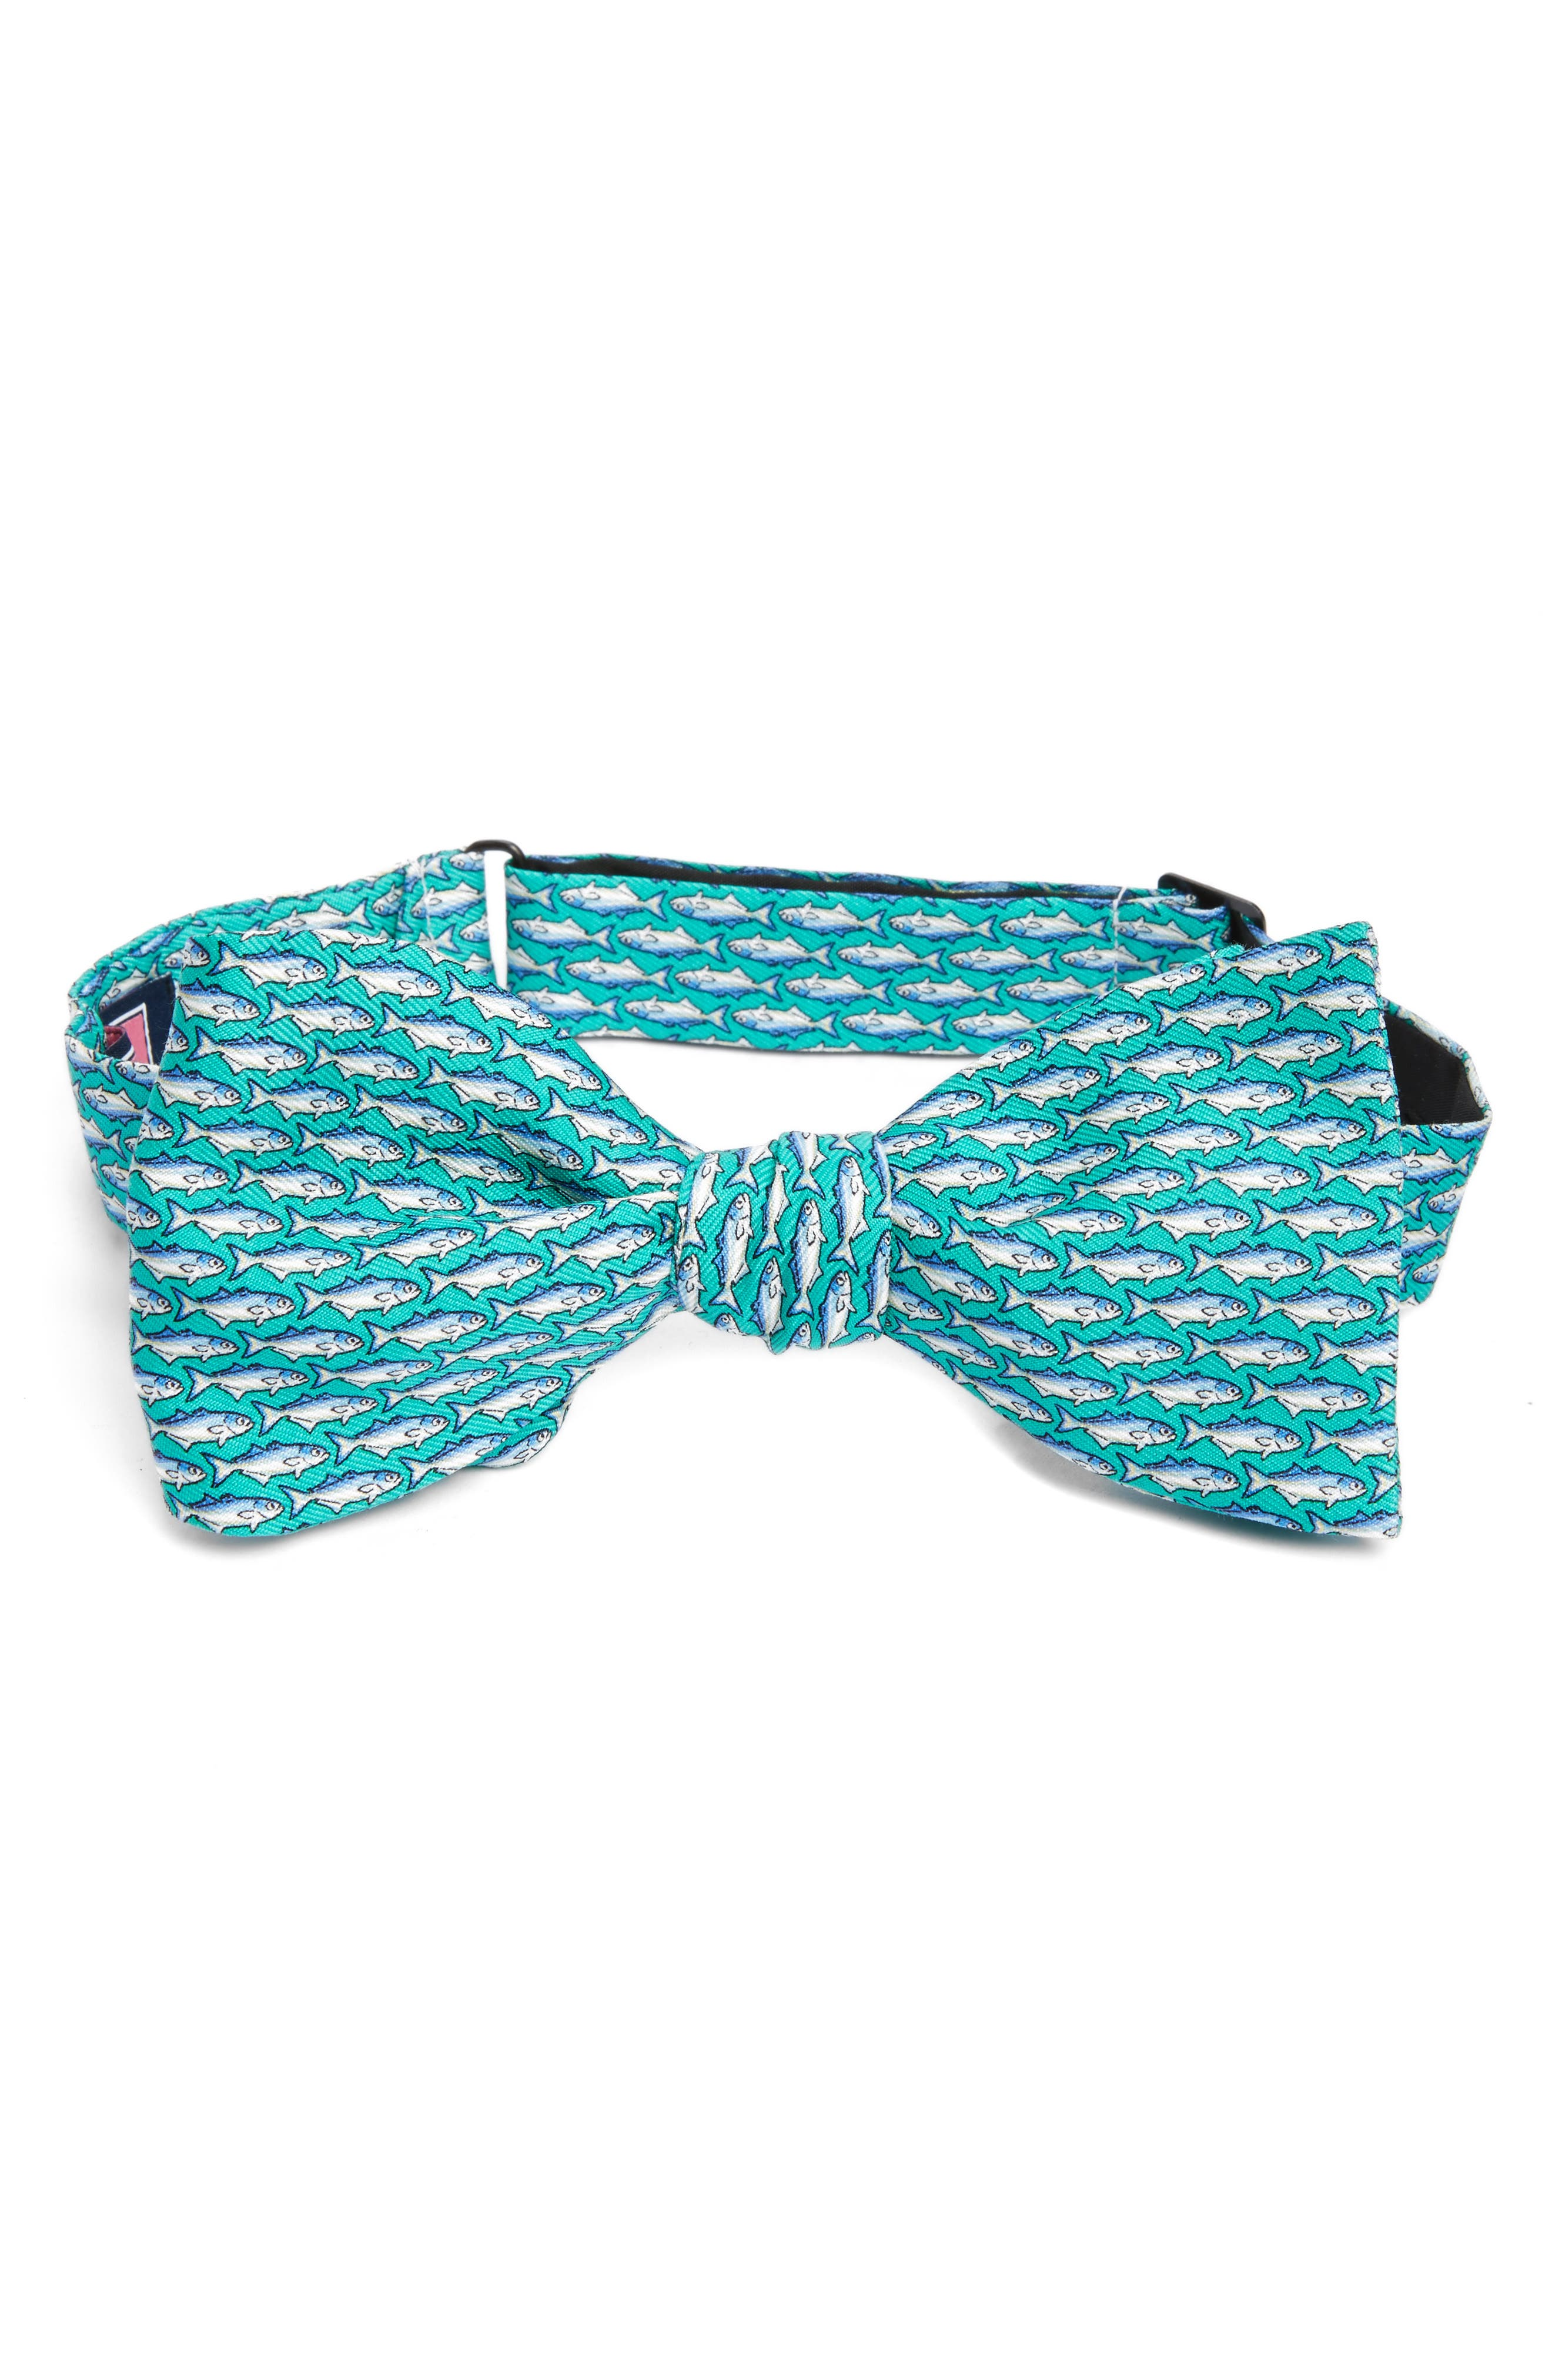 Vineyard Vines Blue Fish Print Silk Bow Tie